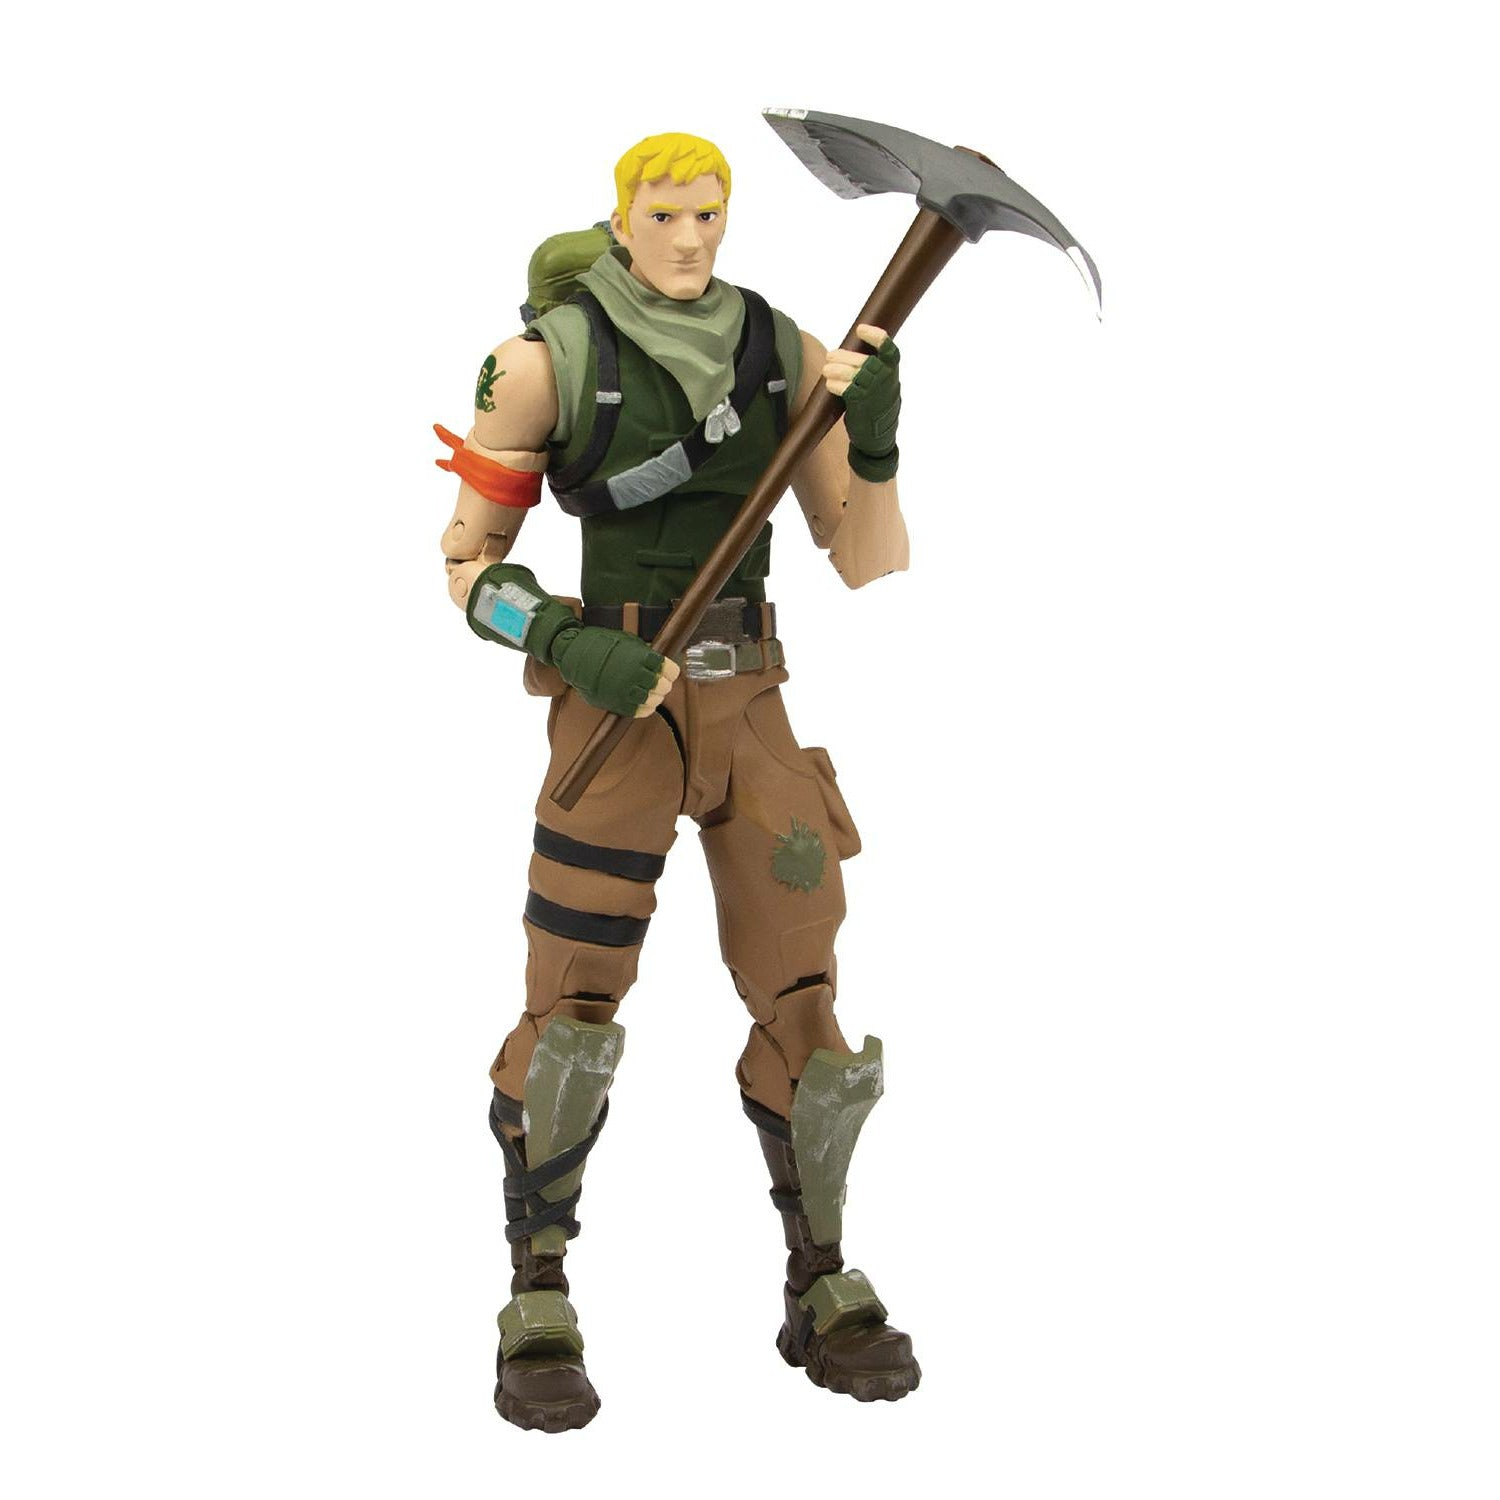 Fortnite Jonesy 7 inch Premium Action Figure